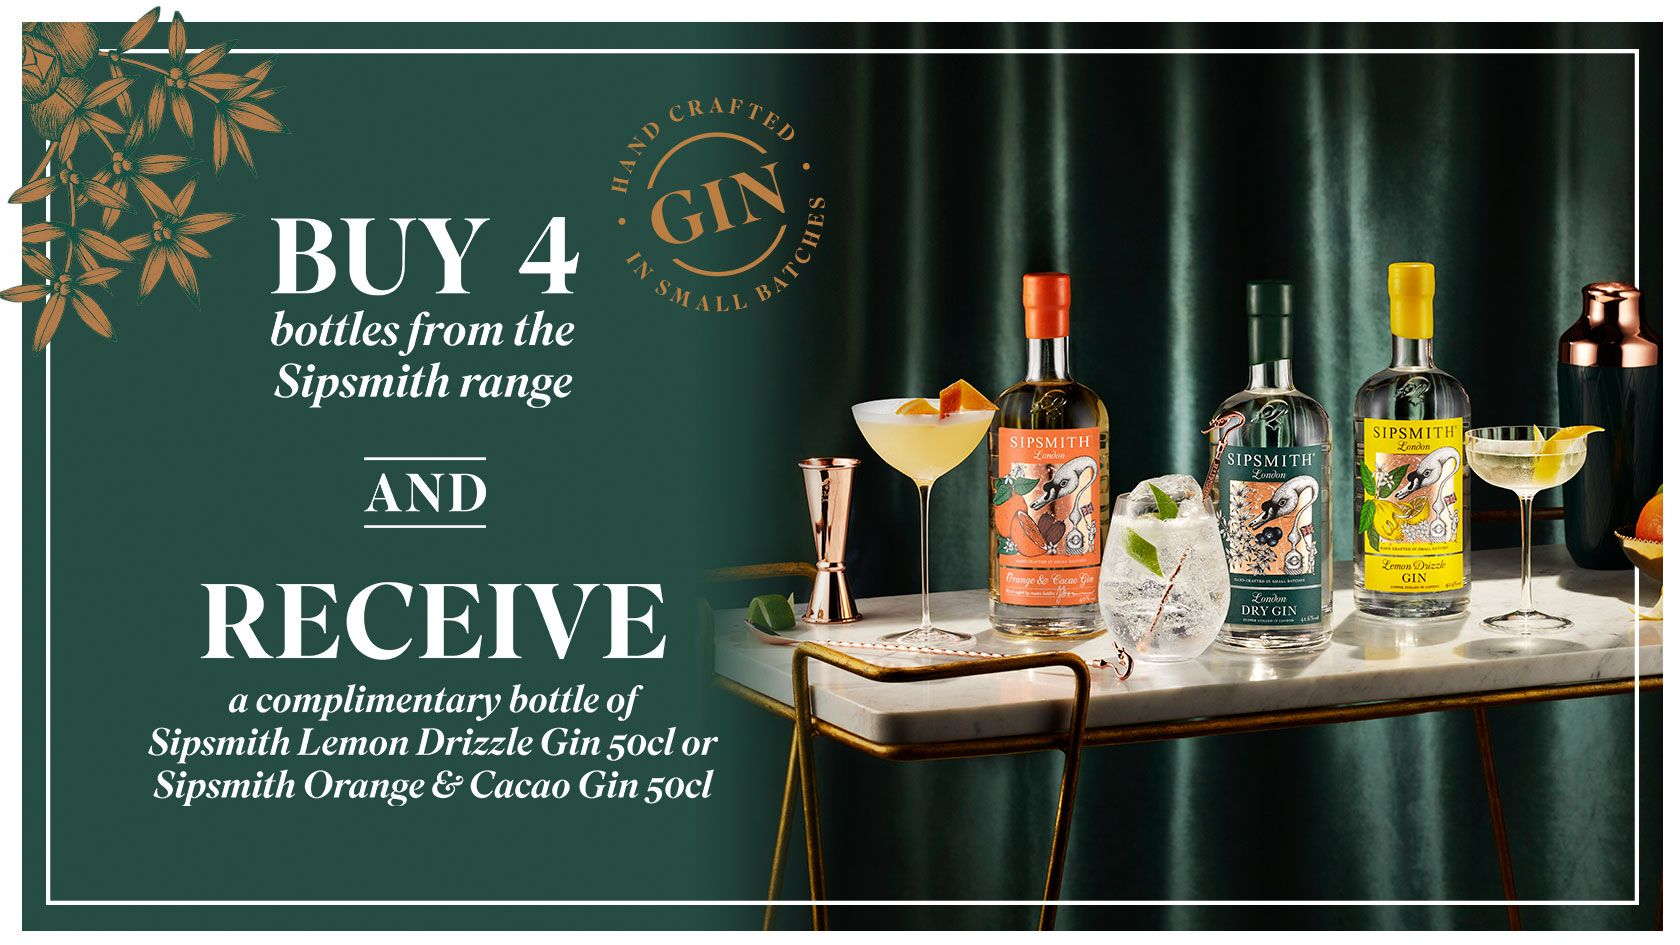 SIPSMITH GIN OFFER